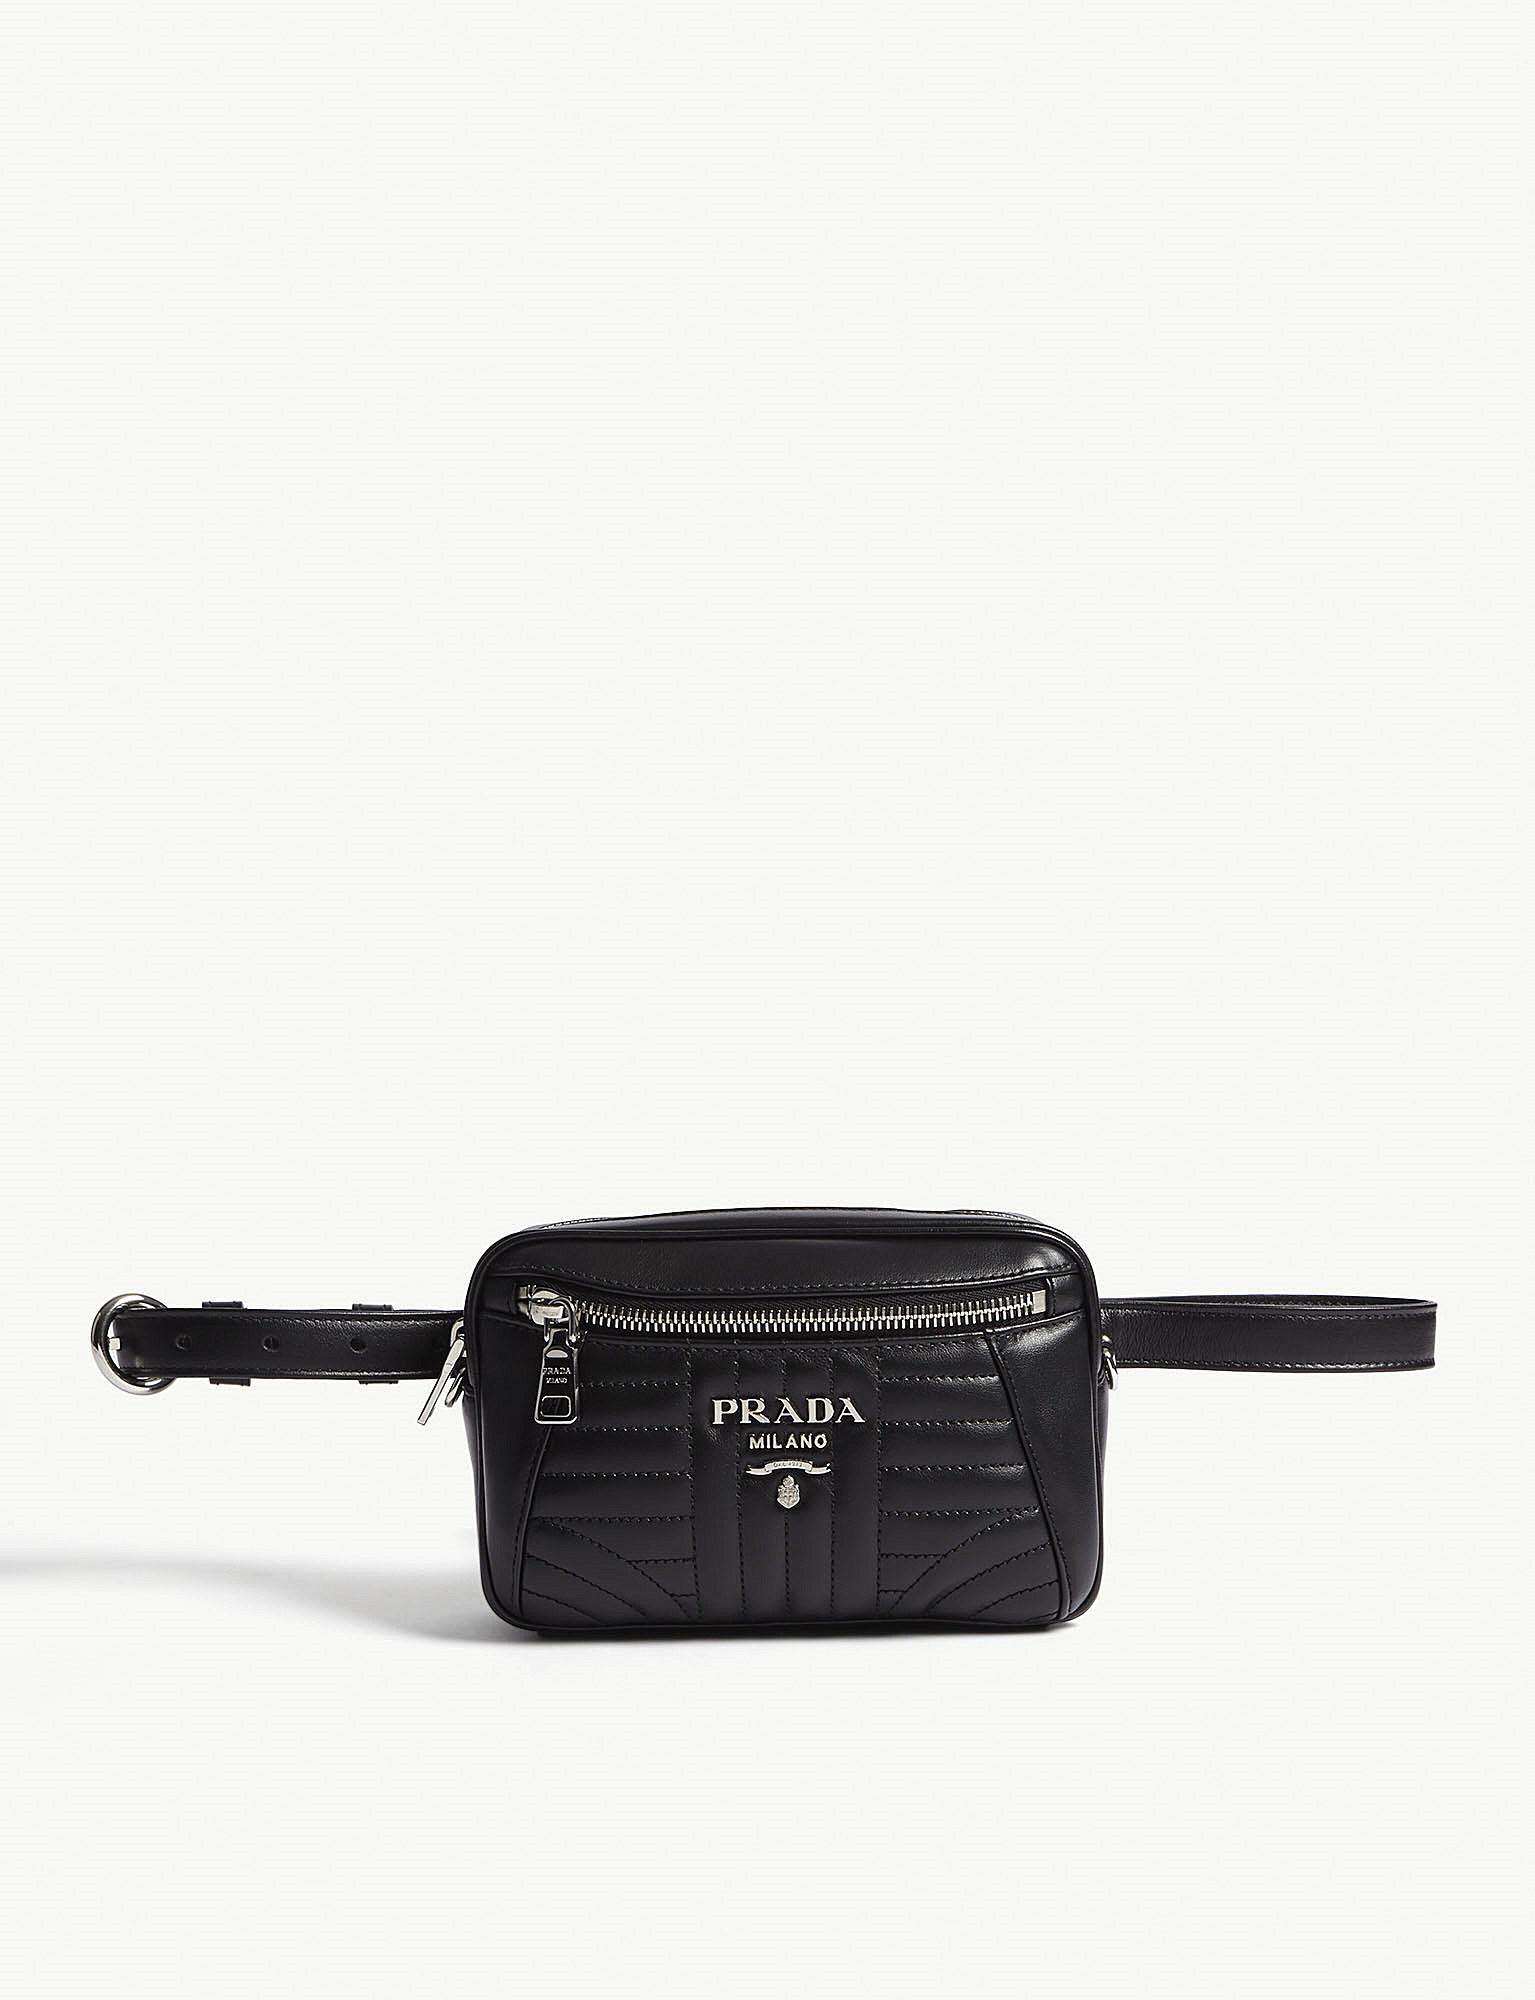 485b25c1d703 Lyst - Prada Small Quilted Leather Belt Bag in Black